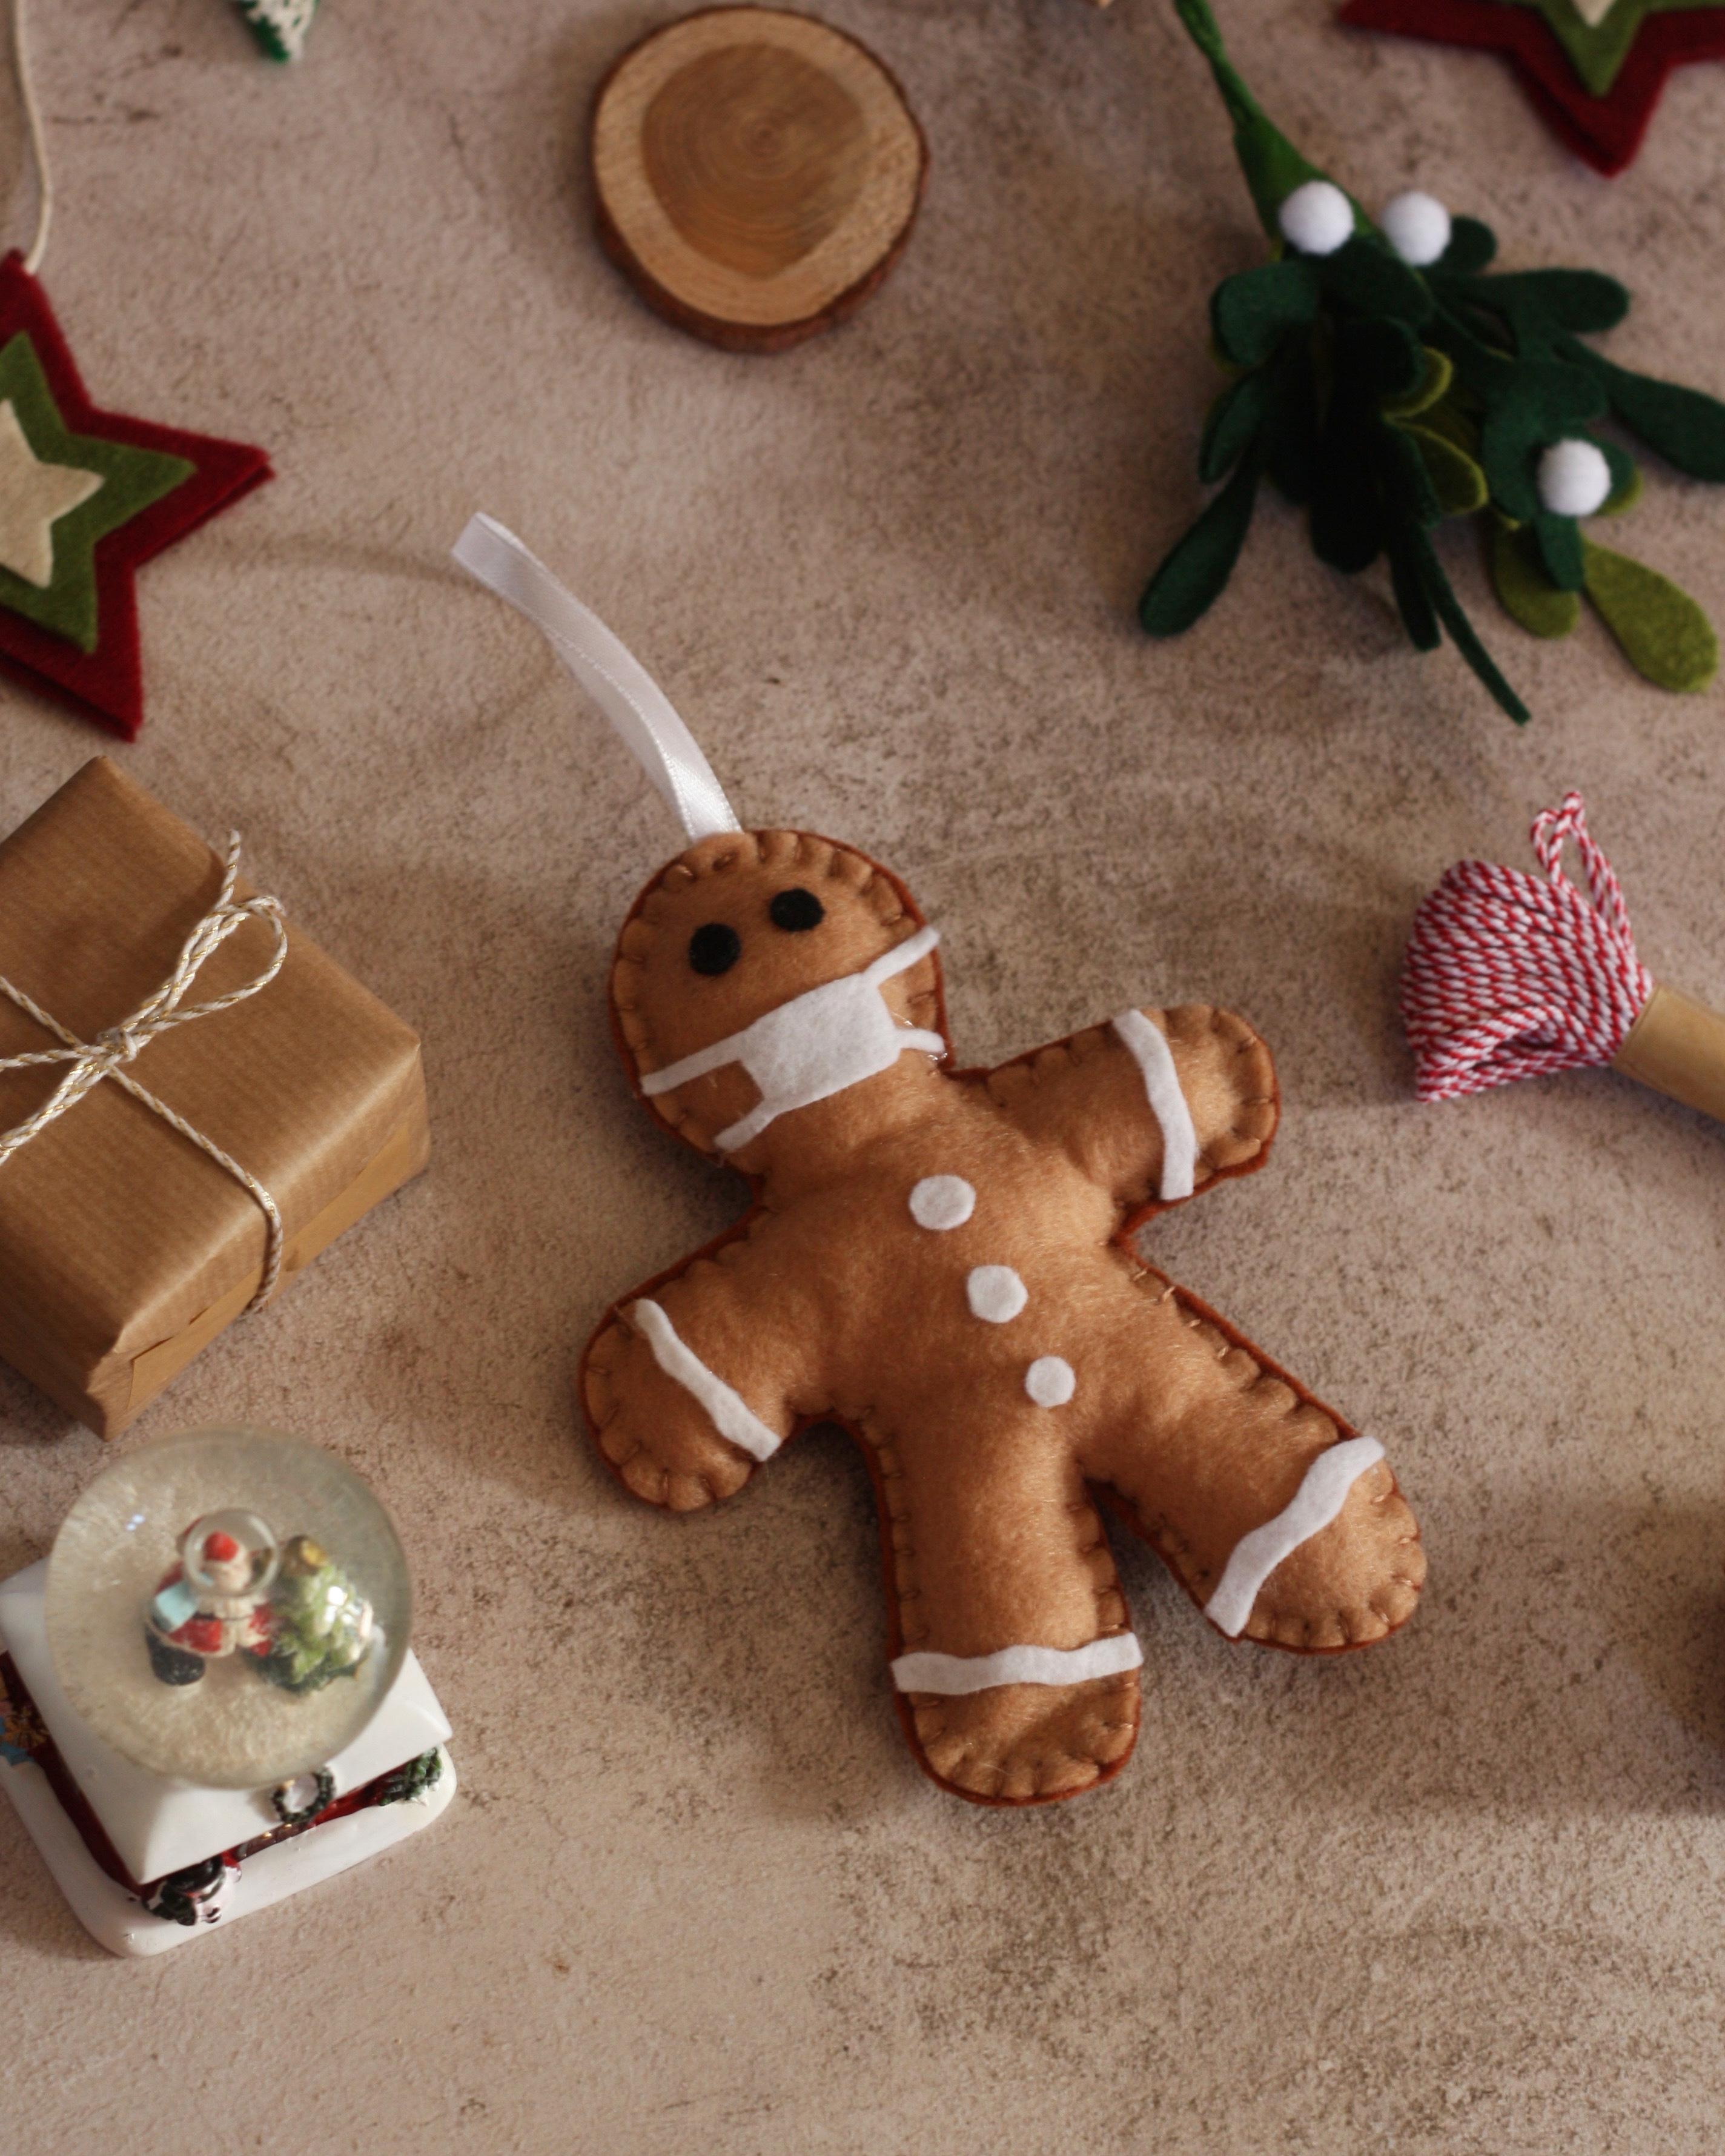 This cute handcrafted ornament just adds a bit of fun to your tree after the year 2020! Hand cut, stitched and made with love this gingerbread man has a little mask too as it's become part of our daily lives.